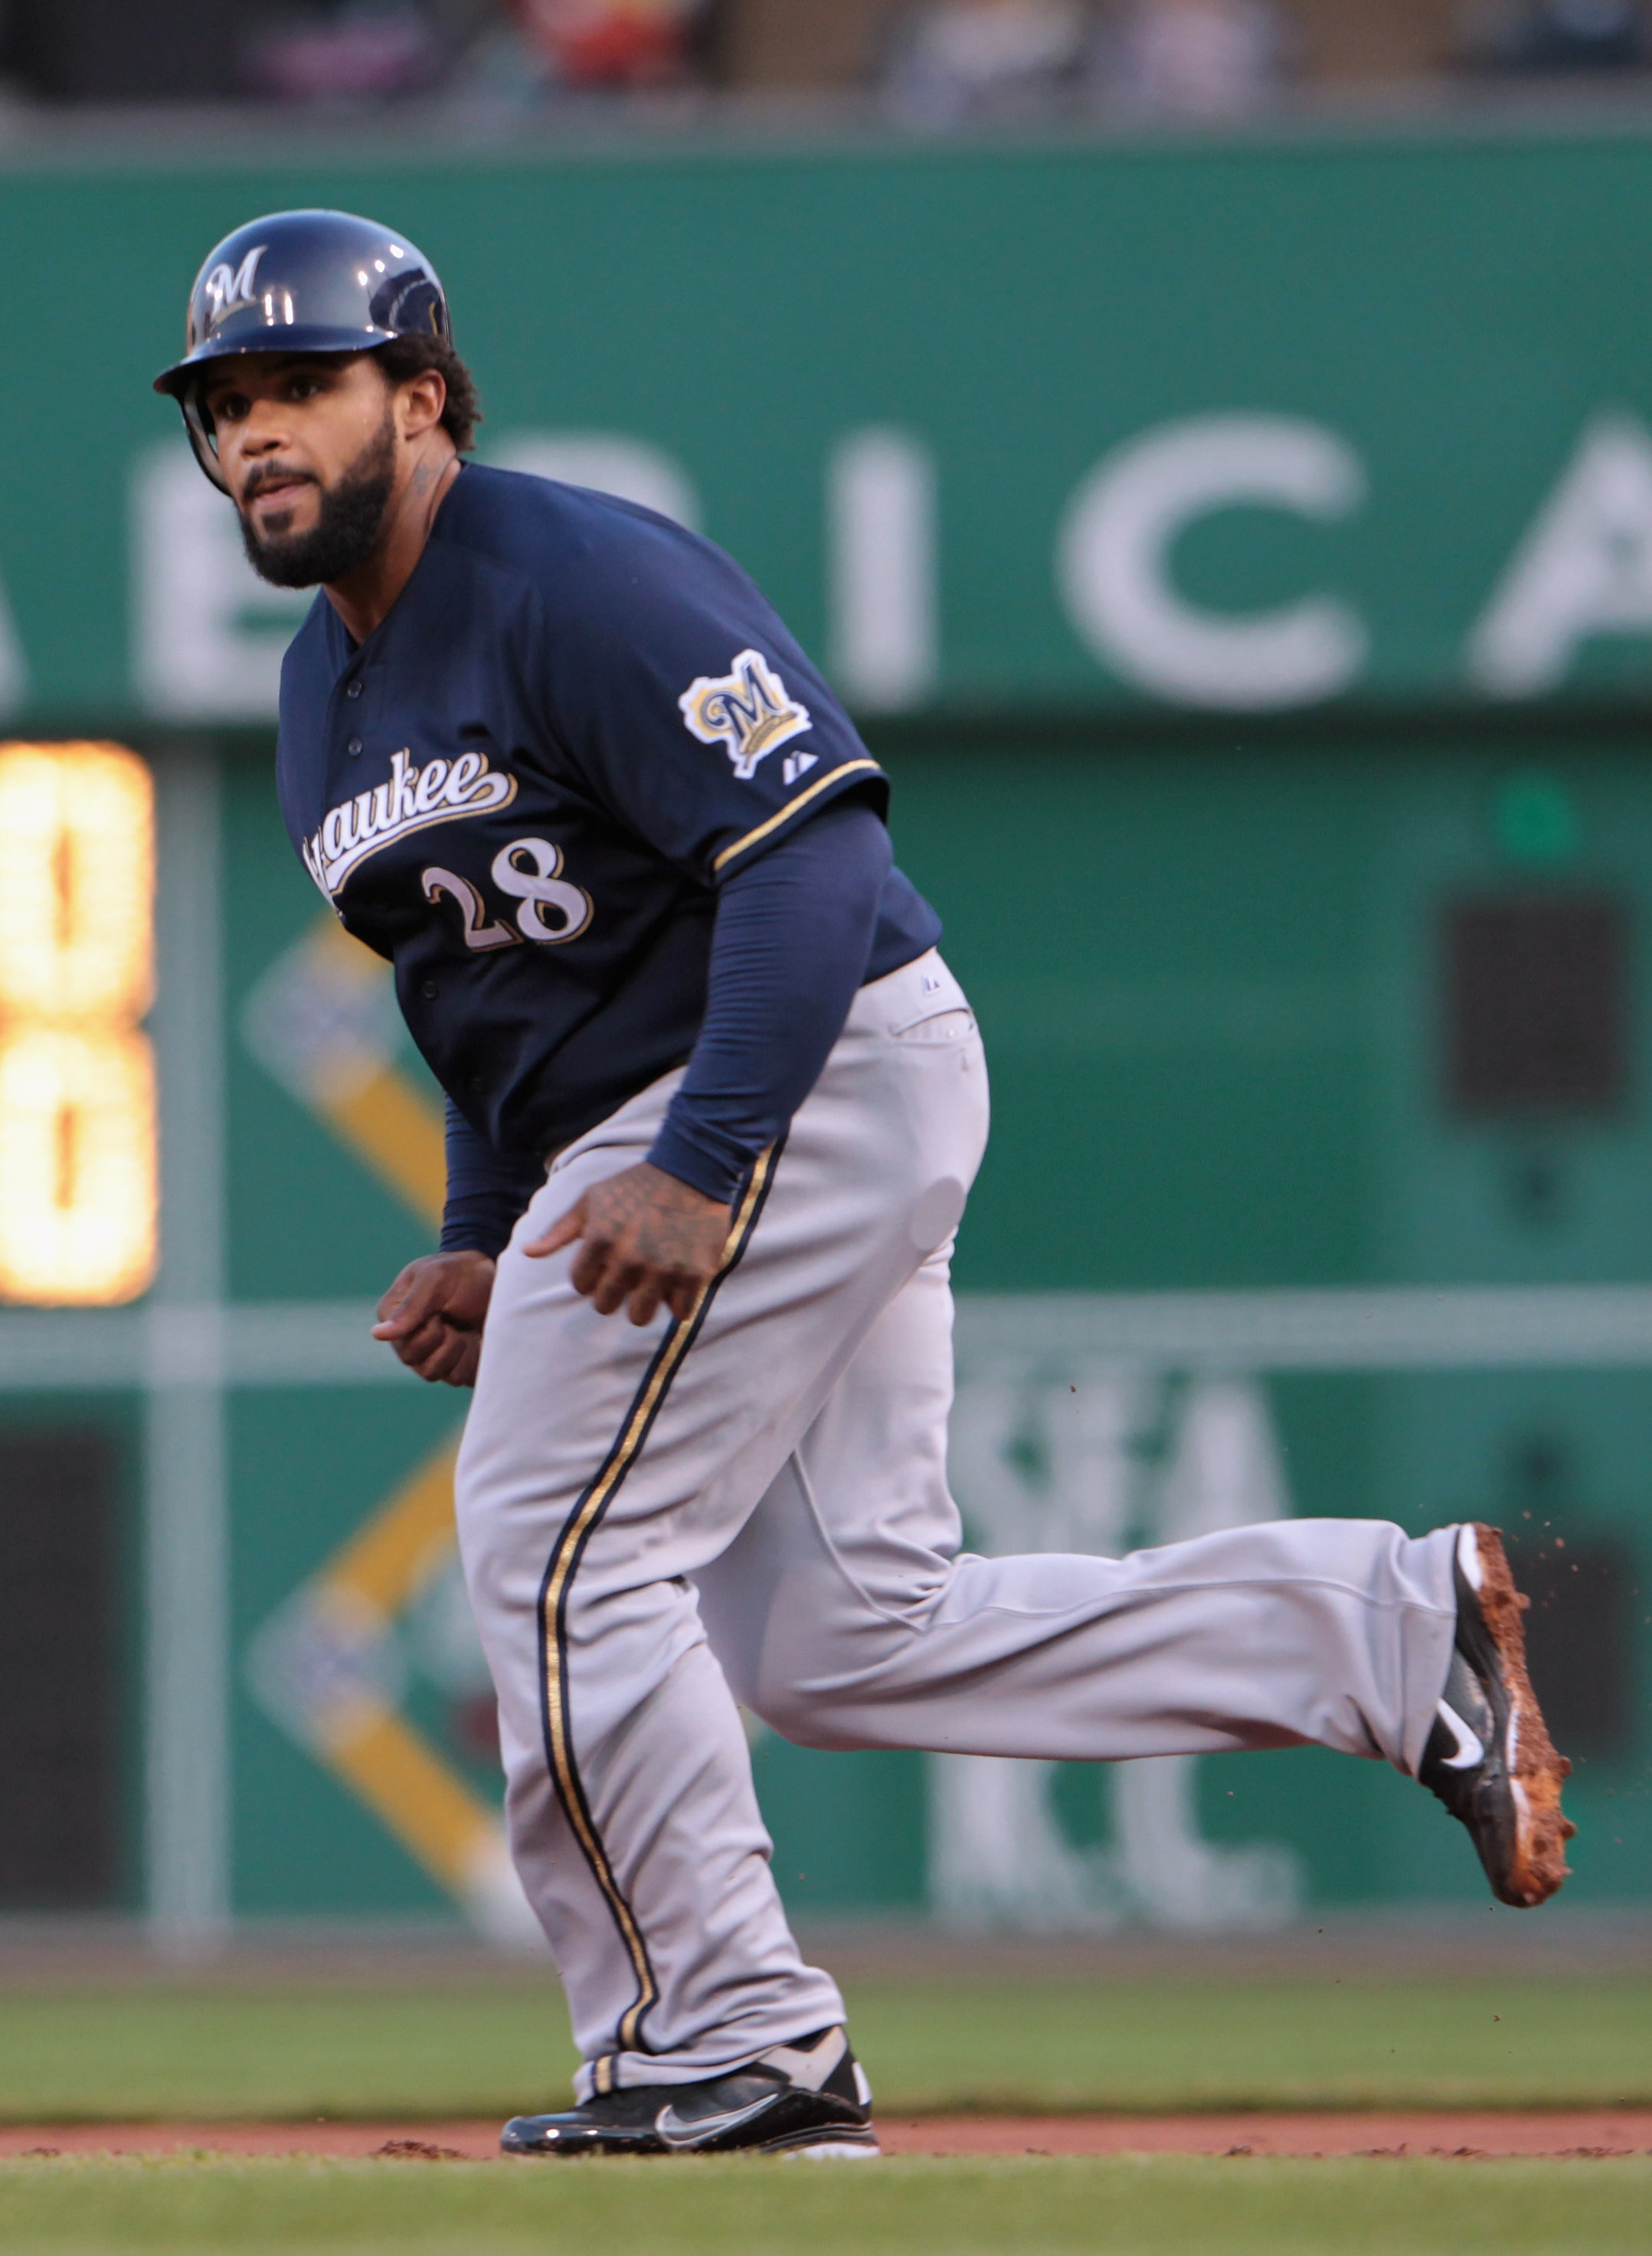 PITTSBURGH, PA - APRIL 14:  Prince Fielder #28 of the Milwaukee Brewers leads off first base during their game against the Pittsburgh Pirates at PNC Park on April 14, 2011 in Pittsburgh, Pennsylvania.  (Photo by Scott Halleran/Getty Images)